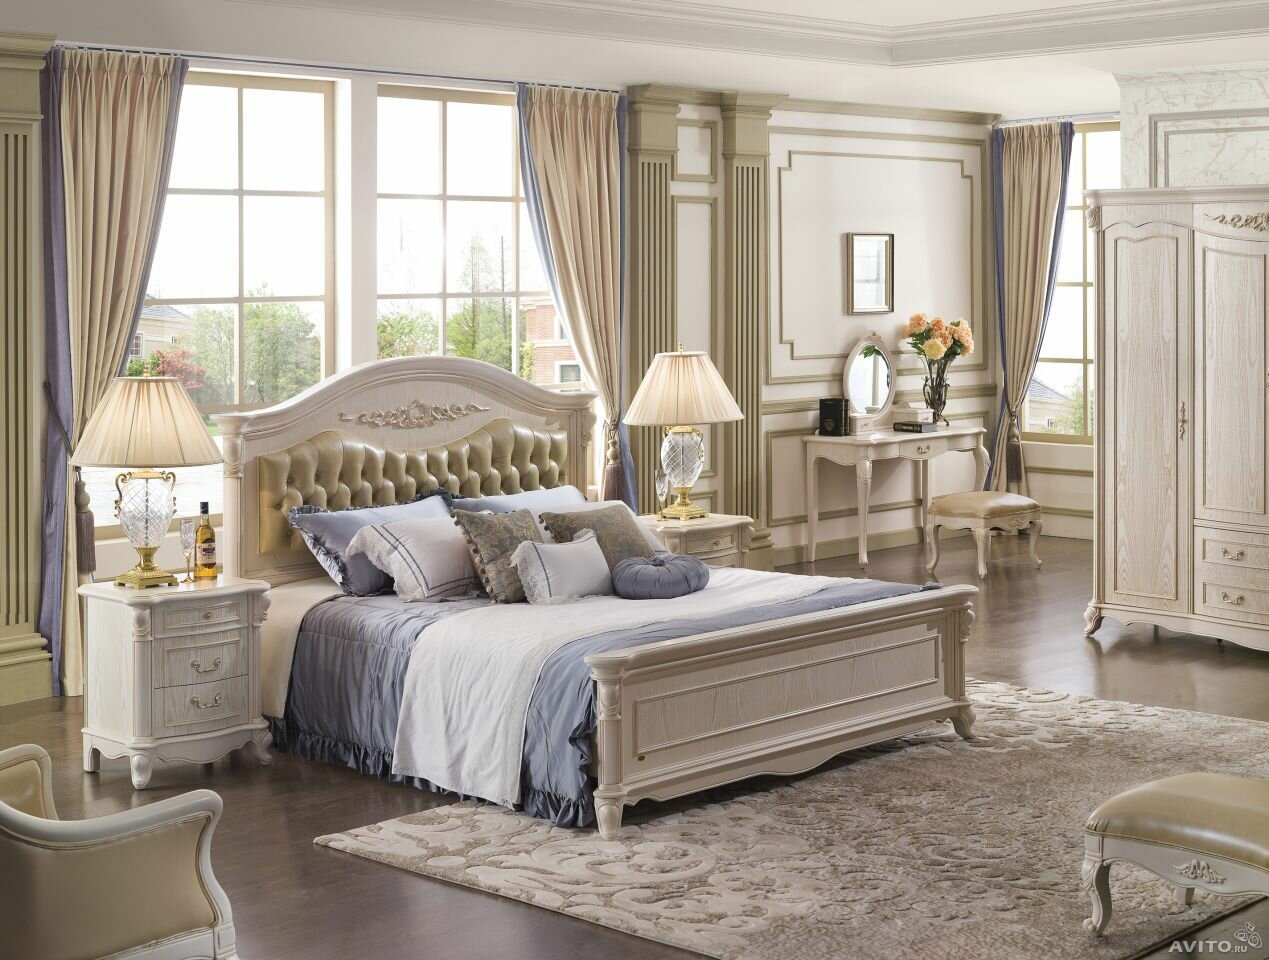 15 world 39 s most beautiful bedrooms mostbeautifulthings for Beautiful bed room